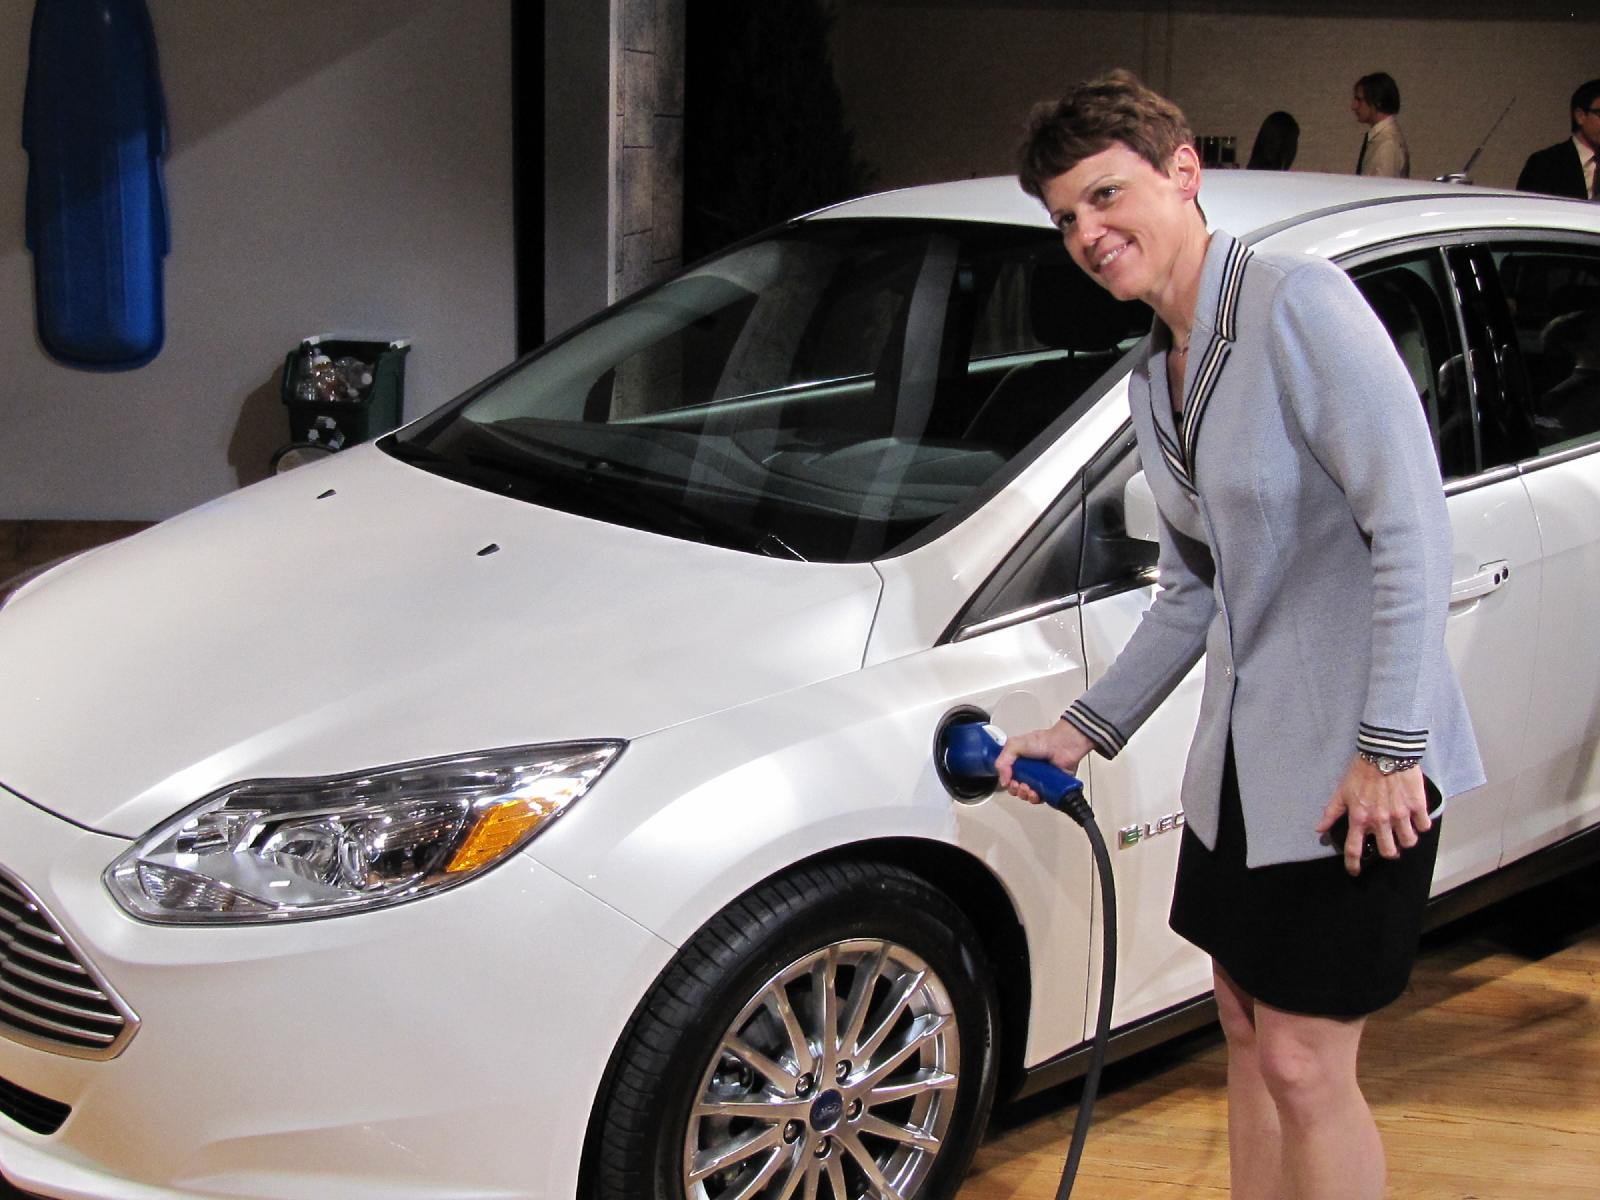 Ford Focus Electric Vs Chevy Volt: Which Would You Buy, And Why? | 2012 Chevy Volt Wiring Diagram |  | Green Car Reports